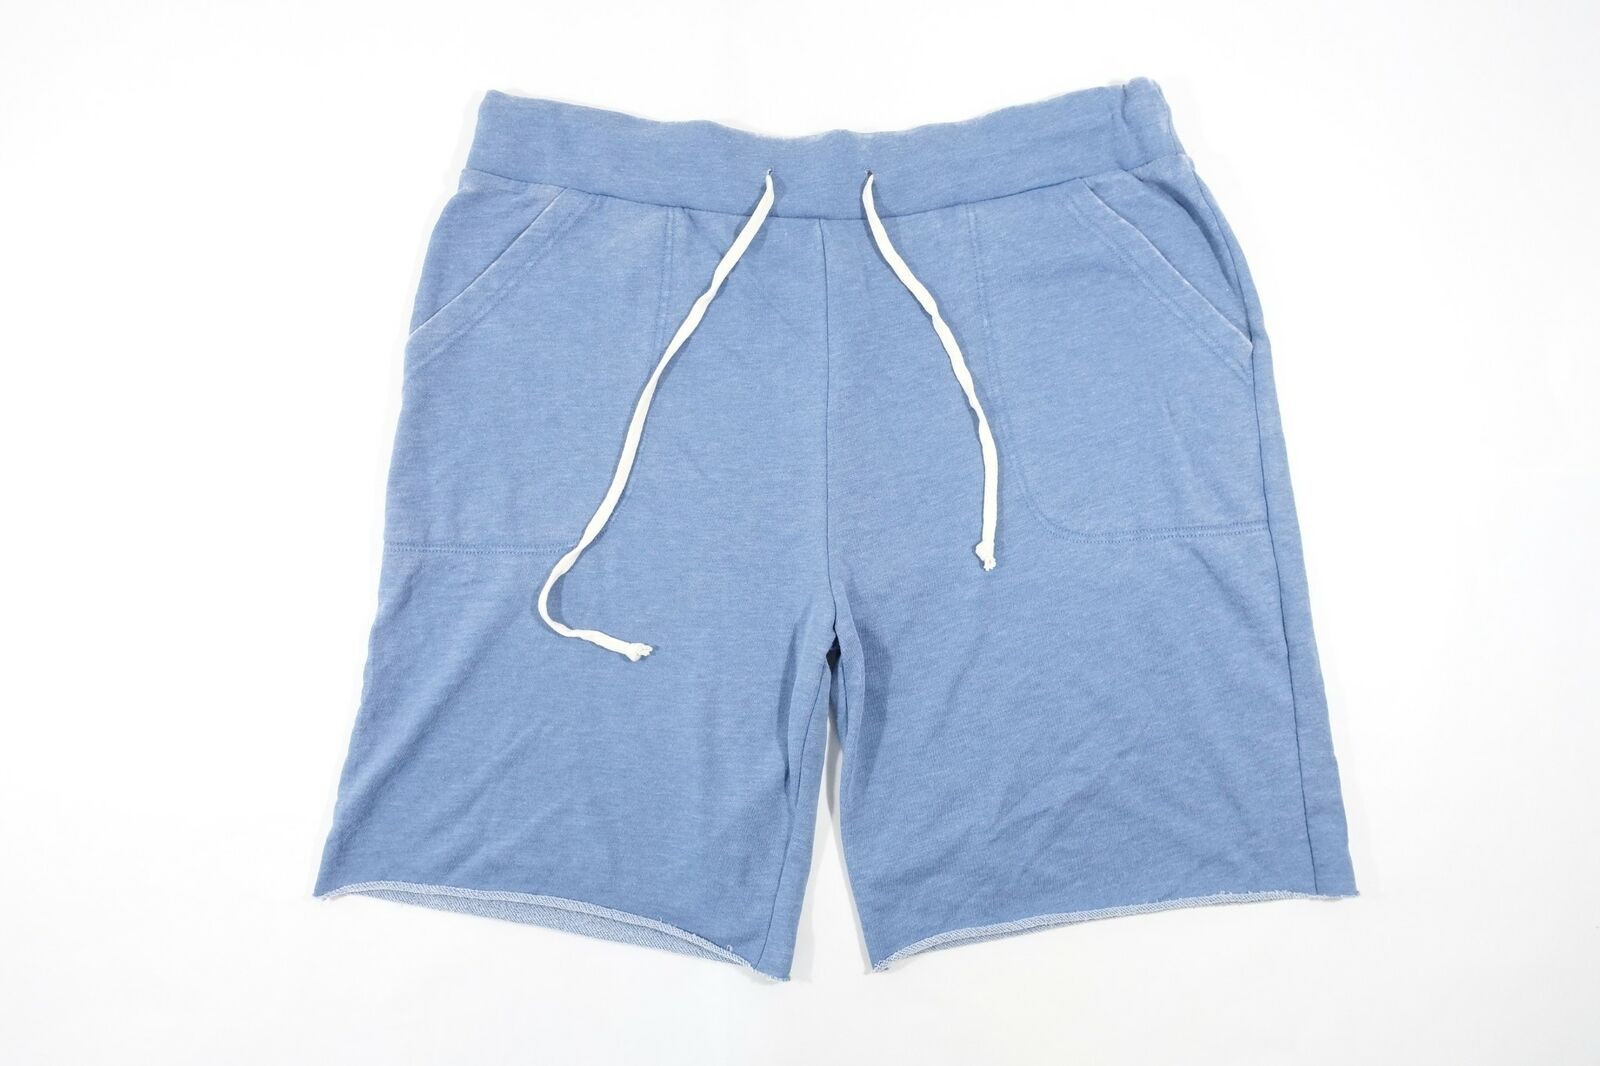 ALTERNATIVE APPAREL FADED DYED LIGHT BLUE 38 40 2XL ACTIVE SWEAT SHORT MENS NWT